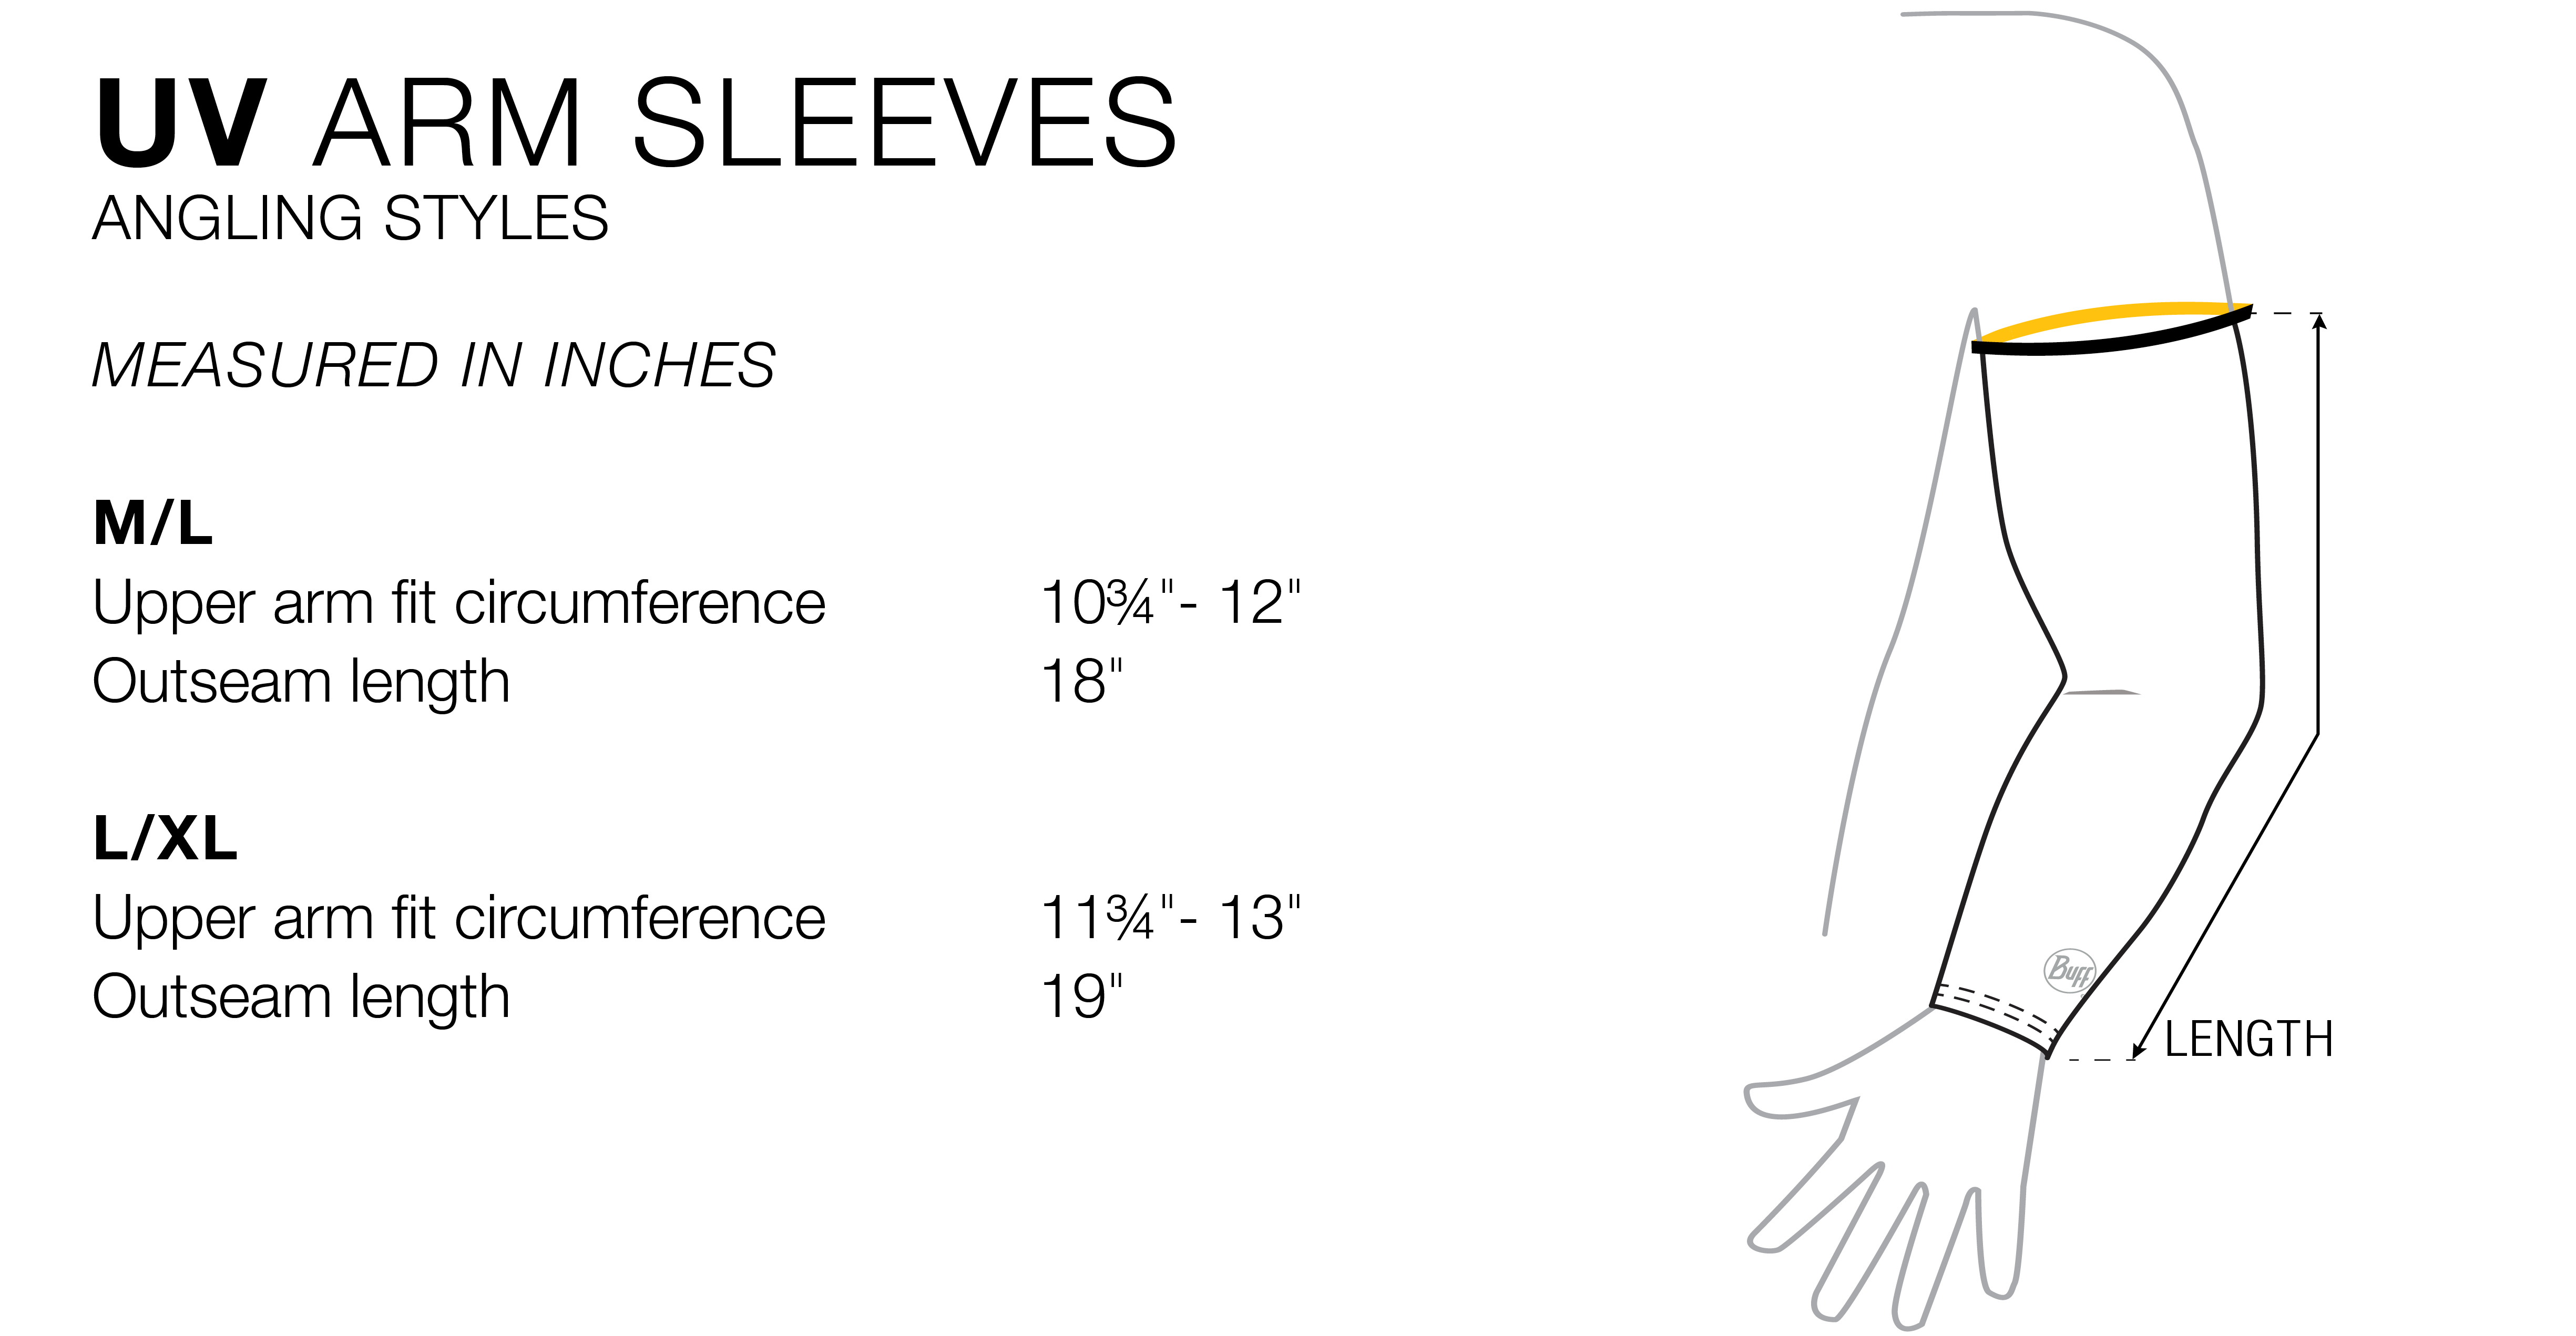 UV Arm Sleeves Buff Original - Size Chart